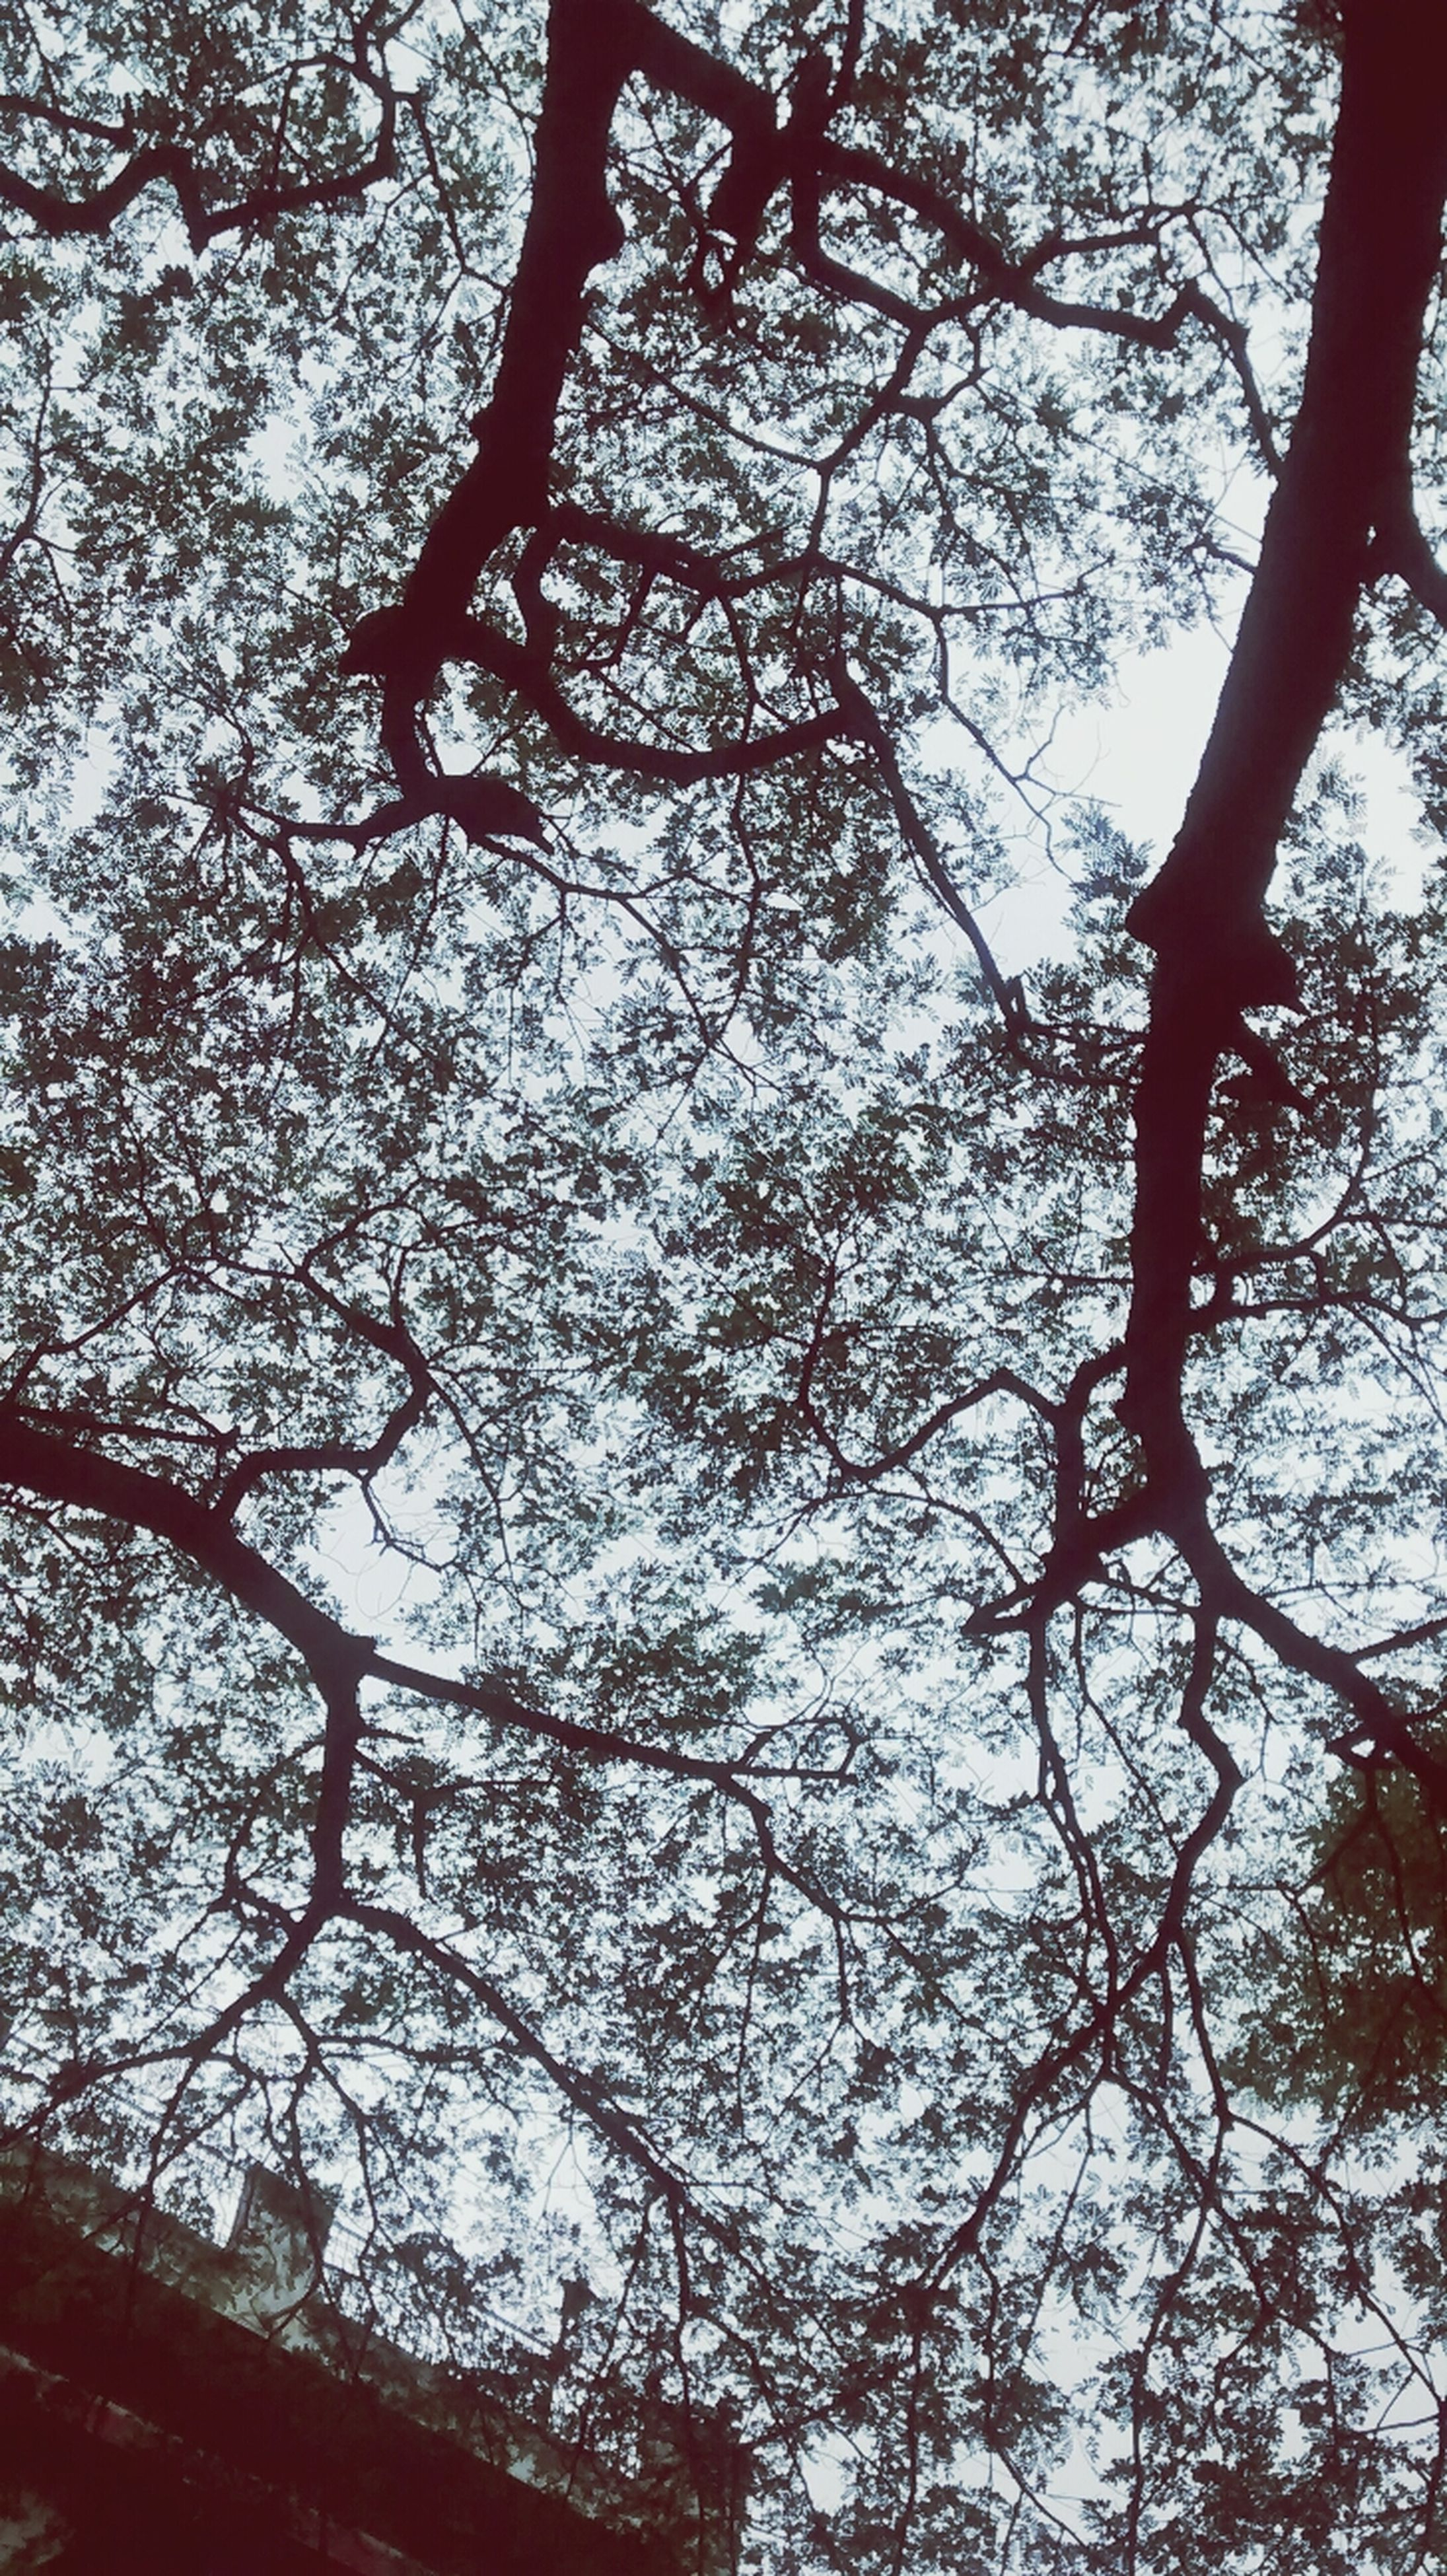 tree, branch, low angle view, bare tree, tree trunk, growth, nature, tranquility, sky, beauty in nature, silhouette, day, no people, outdoors, scenics, tranquil scene, forest, clear sky, backgrounds, full frame